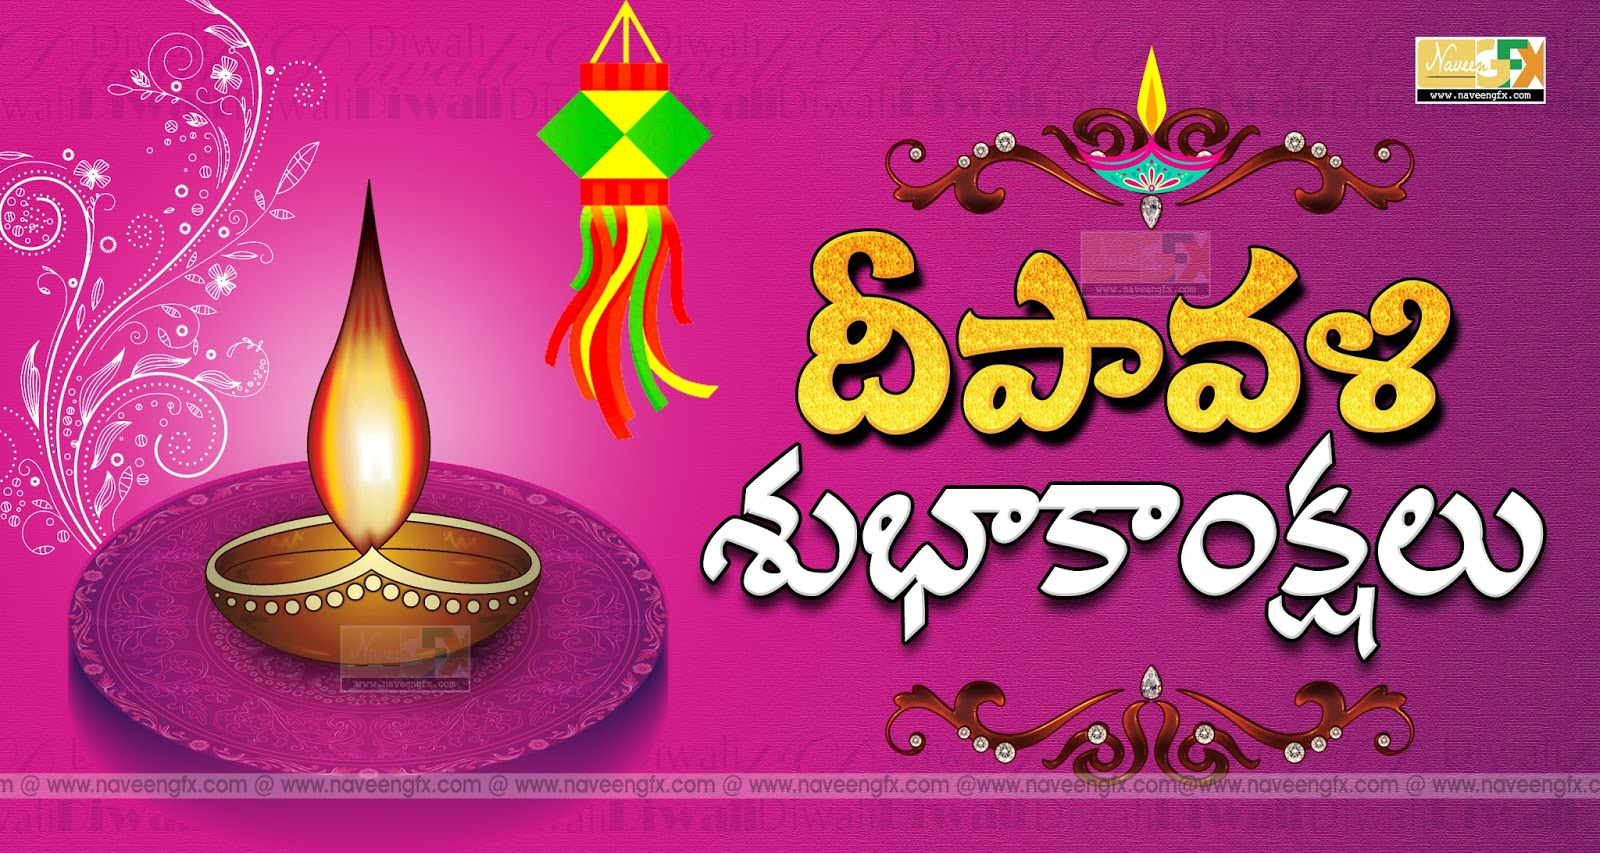 Deepavali greetings words image collections greetings card design pin by amulya prema on diwali deepavali greetings wishes in telugu m4hsunfo